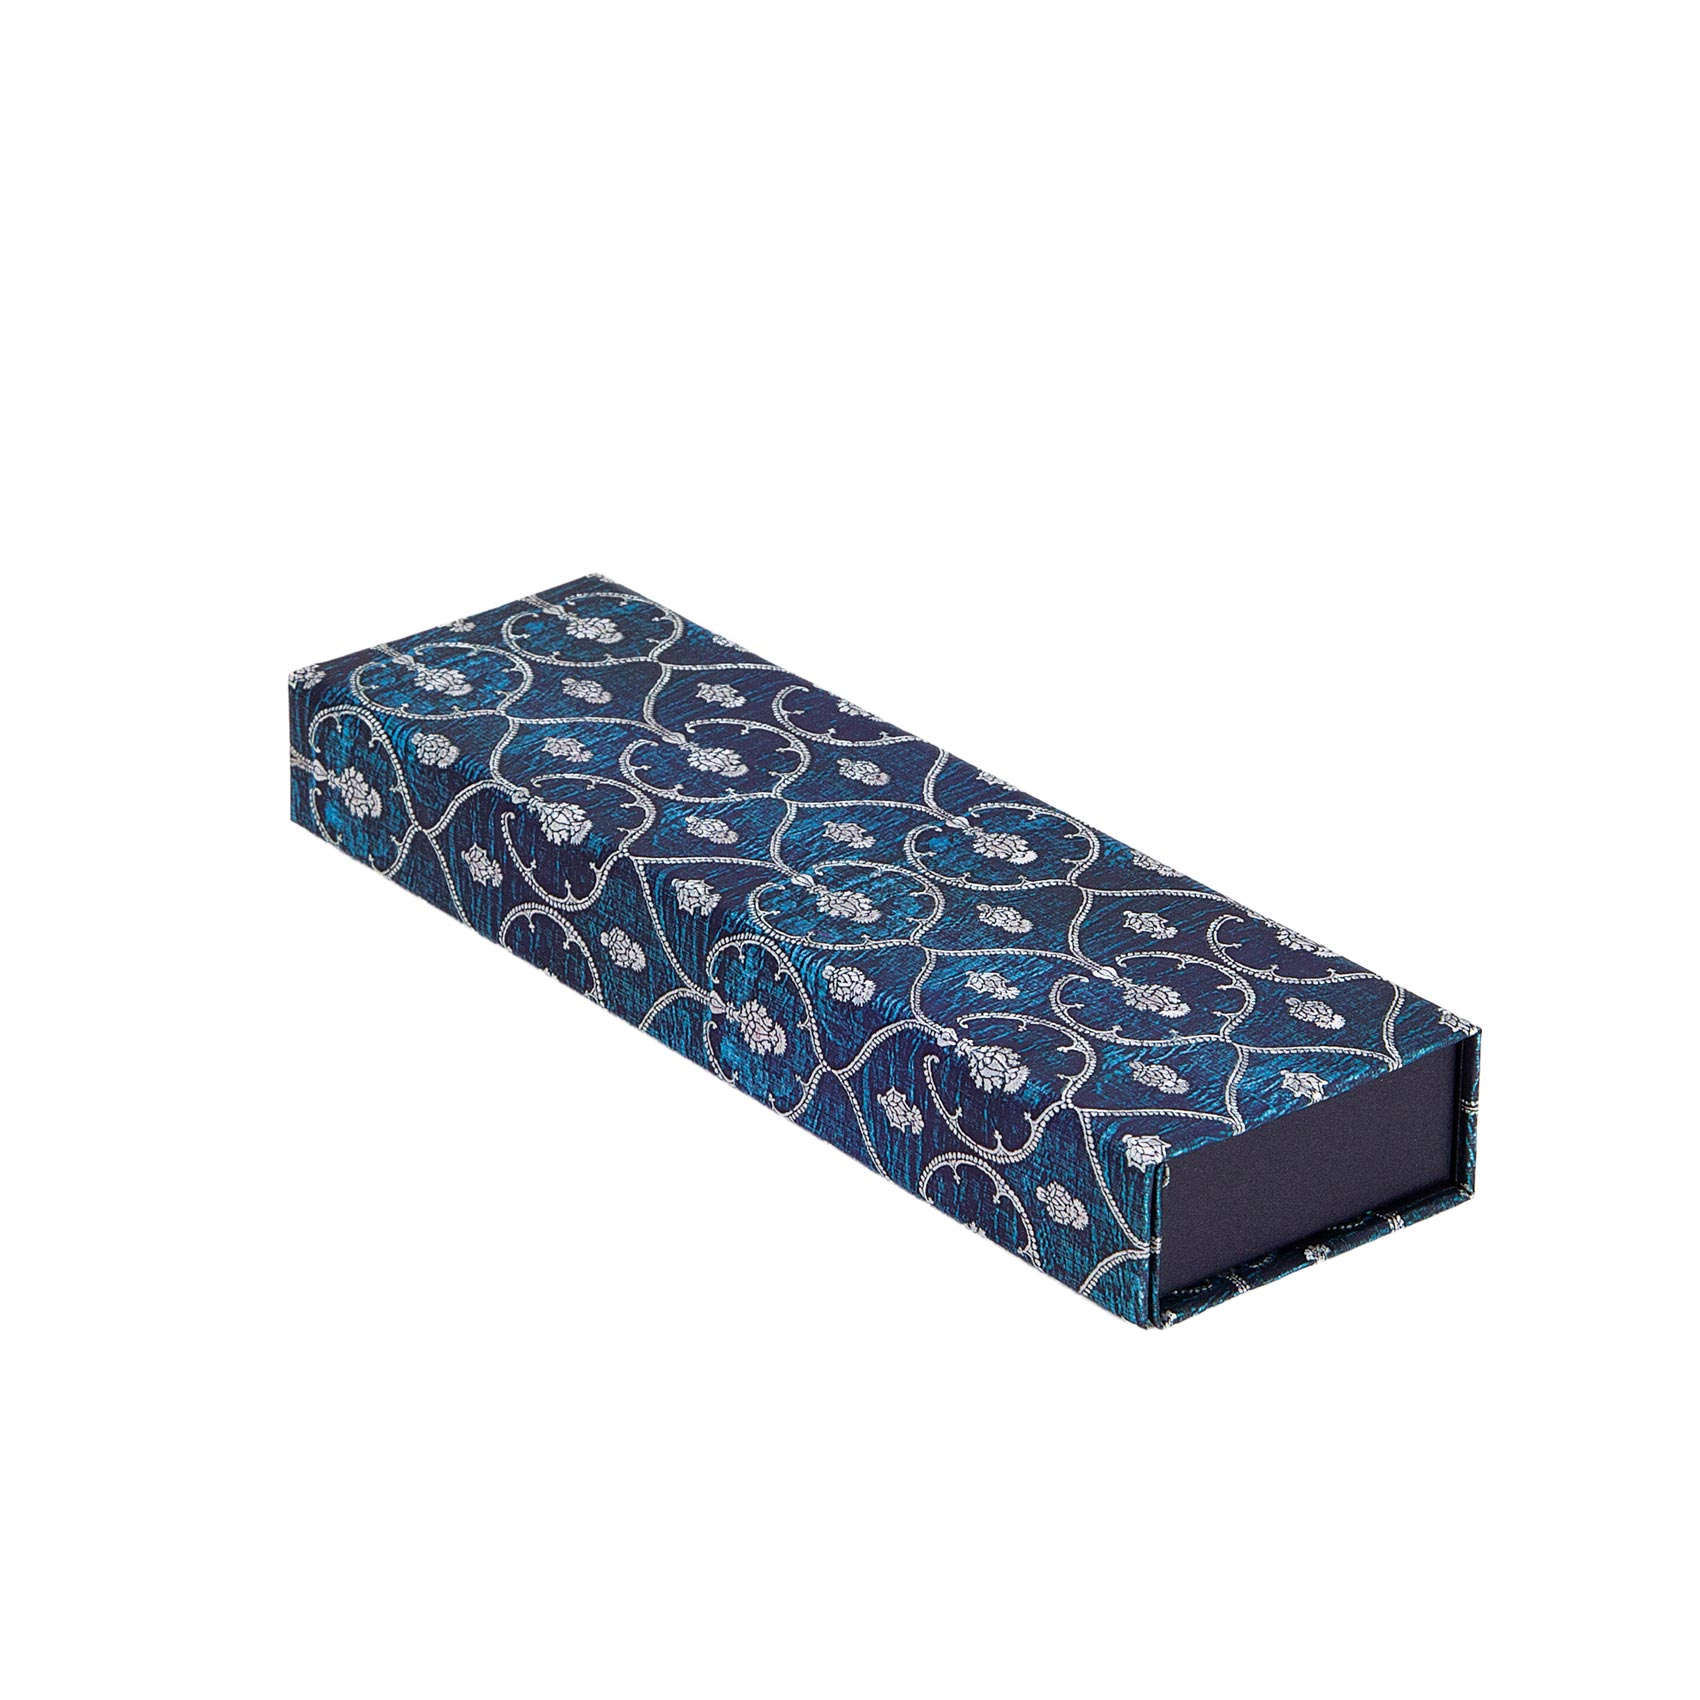 Paperblanks Blue Velvet Pencil Case 8.75 x 1.25 x 2.5 Inch